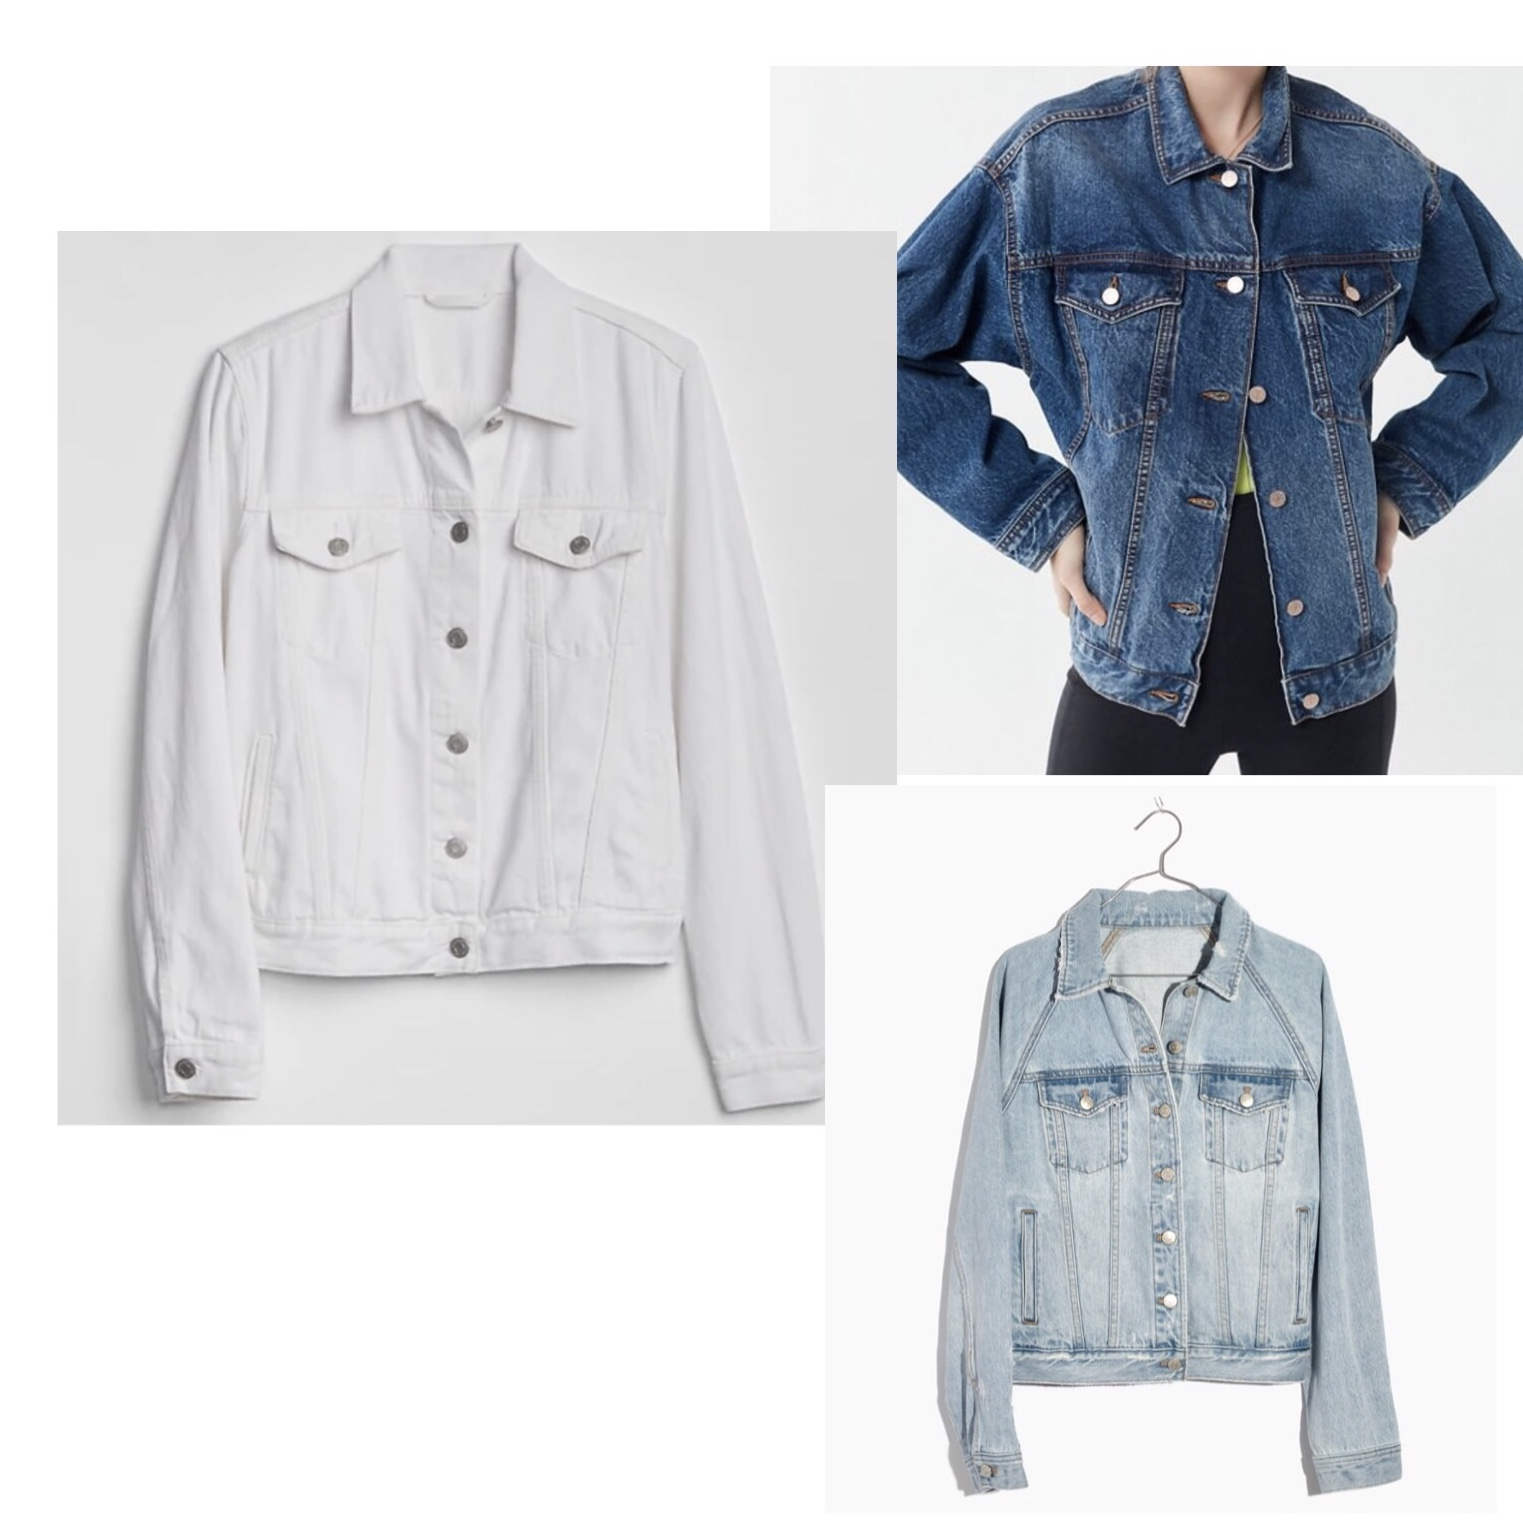 (Clockwise)  1.  Gap Icon Denim Jacket  - $63  2.  Urban Outfitters BDG Classic Denim Trucker Jacket  - $79  3.  Madewell The Raglan Oversized Jean Jacket  - $129